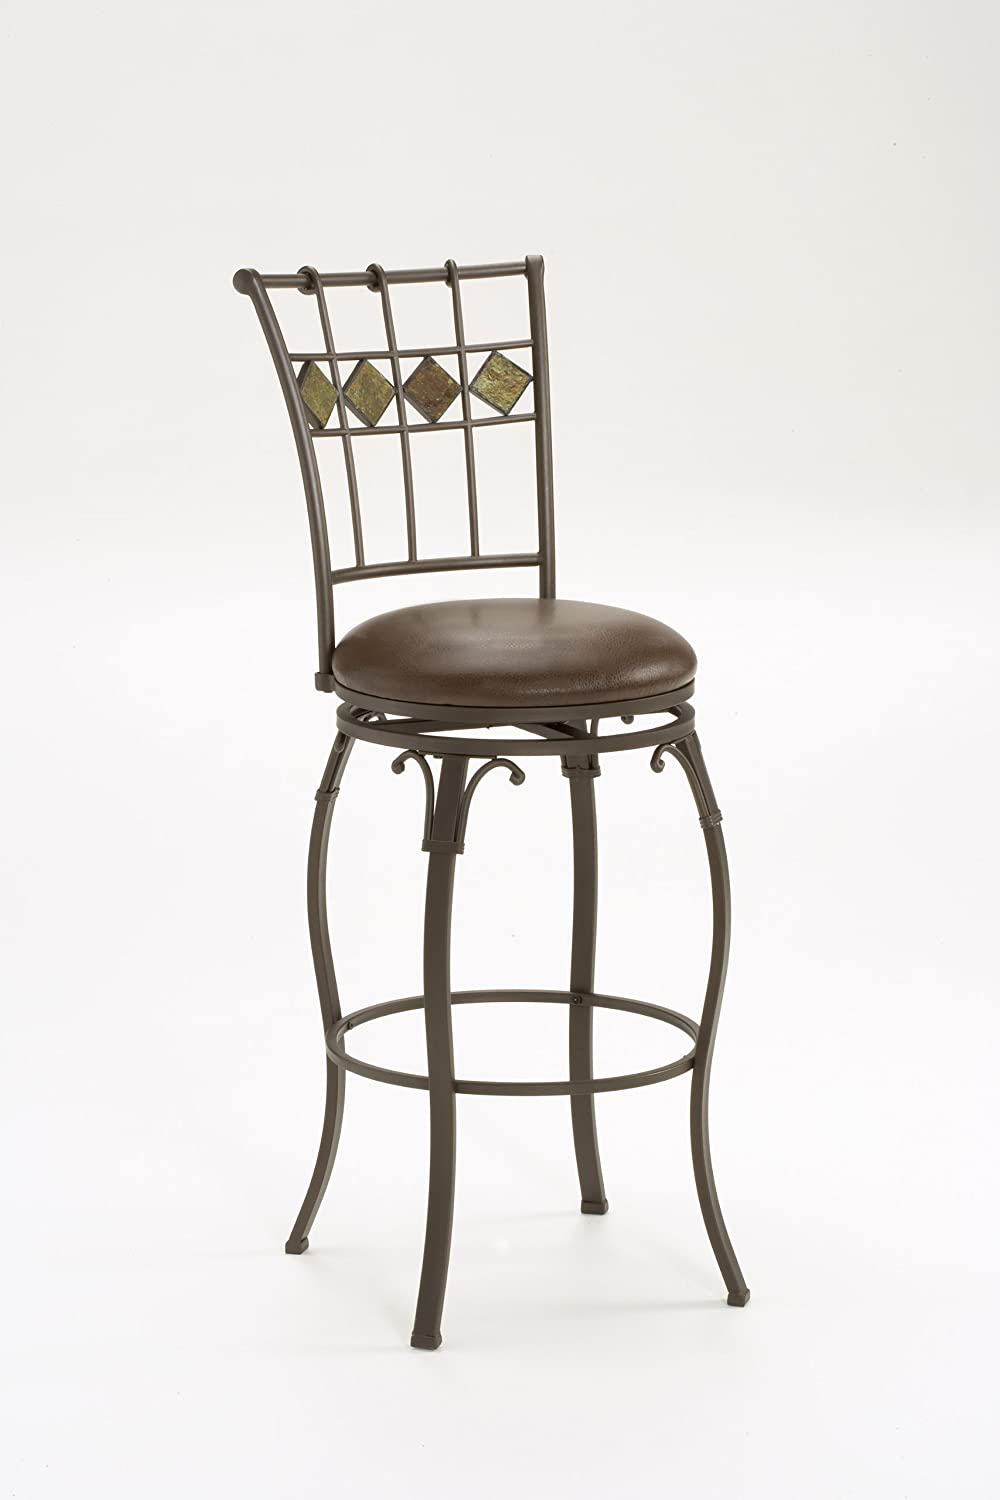 Amazon.com Hillsdale Lakeview Swivel Barstool 30-Inch with Slate Accents Brown Kitchen u0026 Dining & Amazon.com: Hillsdale Lakeview Swivel Barstool 30-Inch with Slate ... islam-shia.org